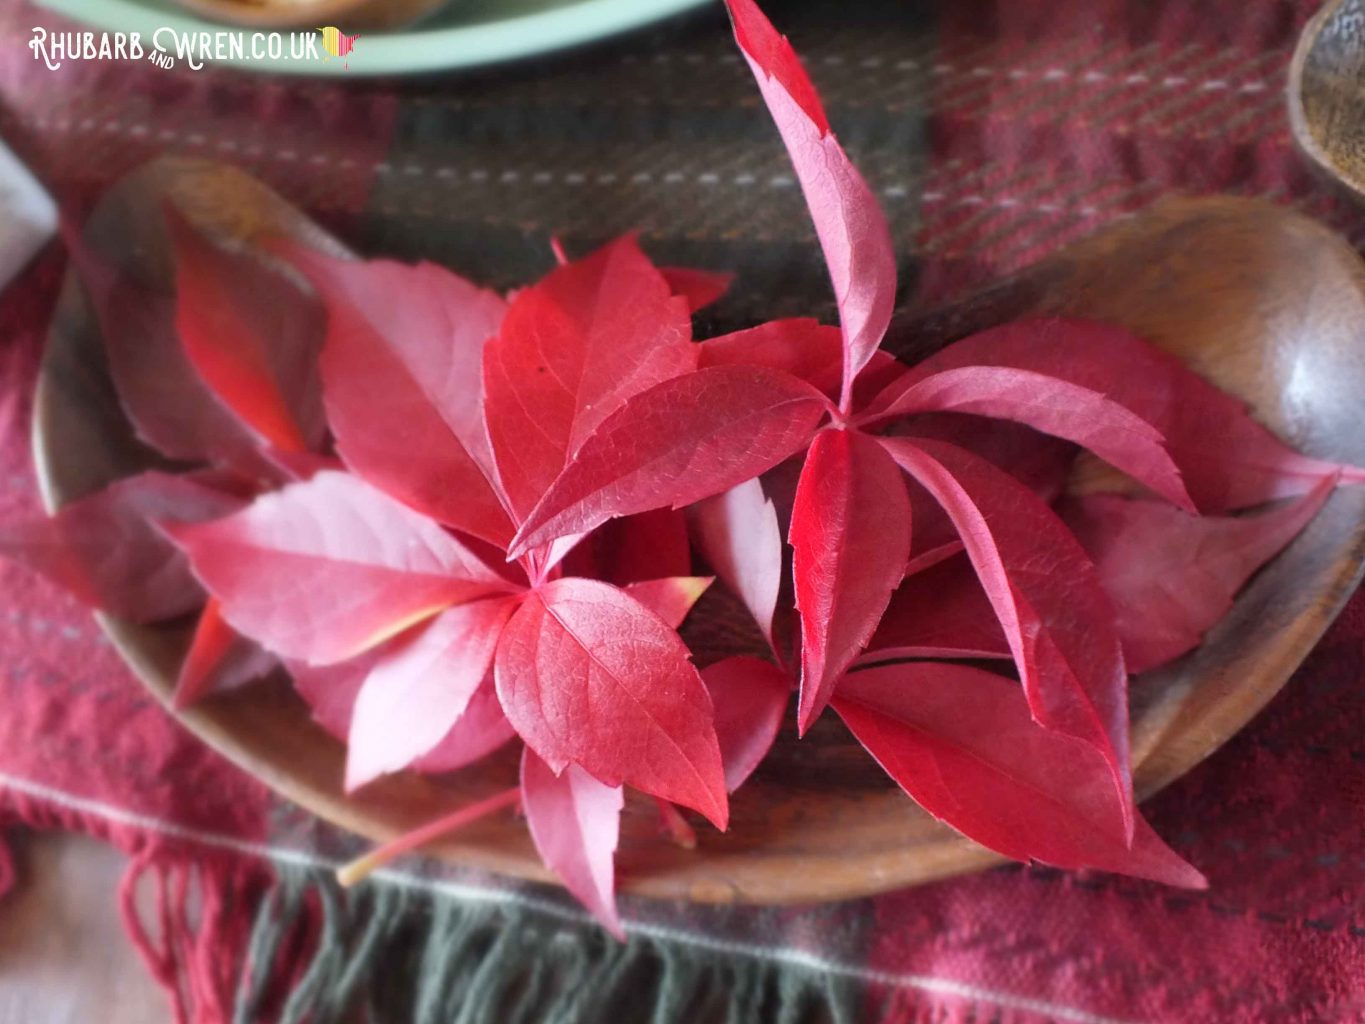 red leaves in a bowl